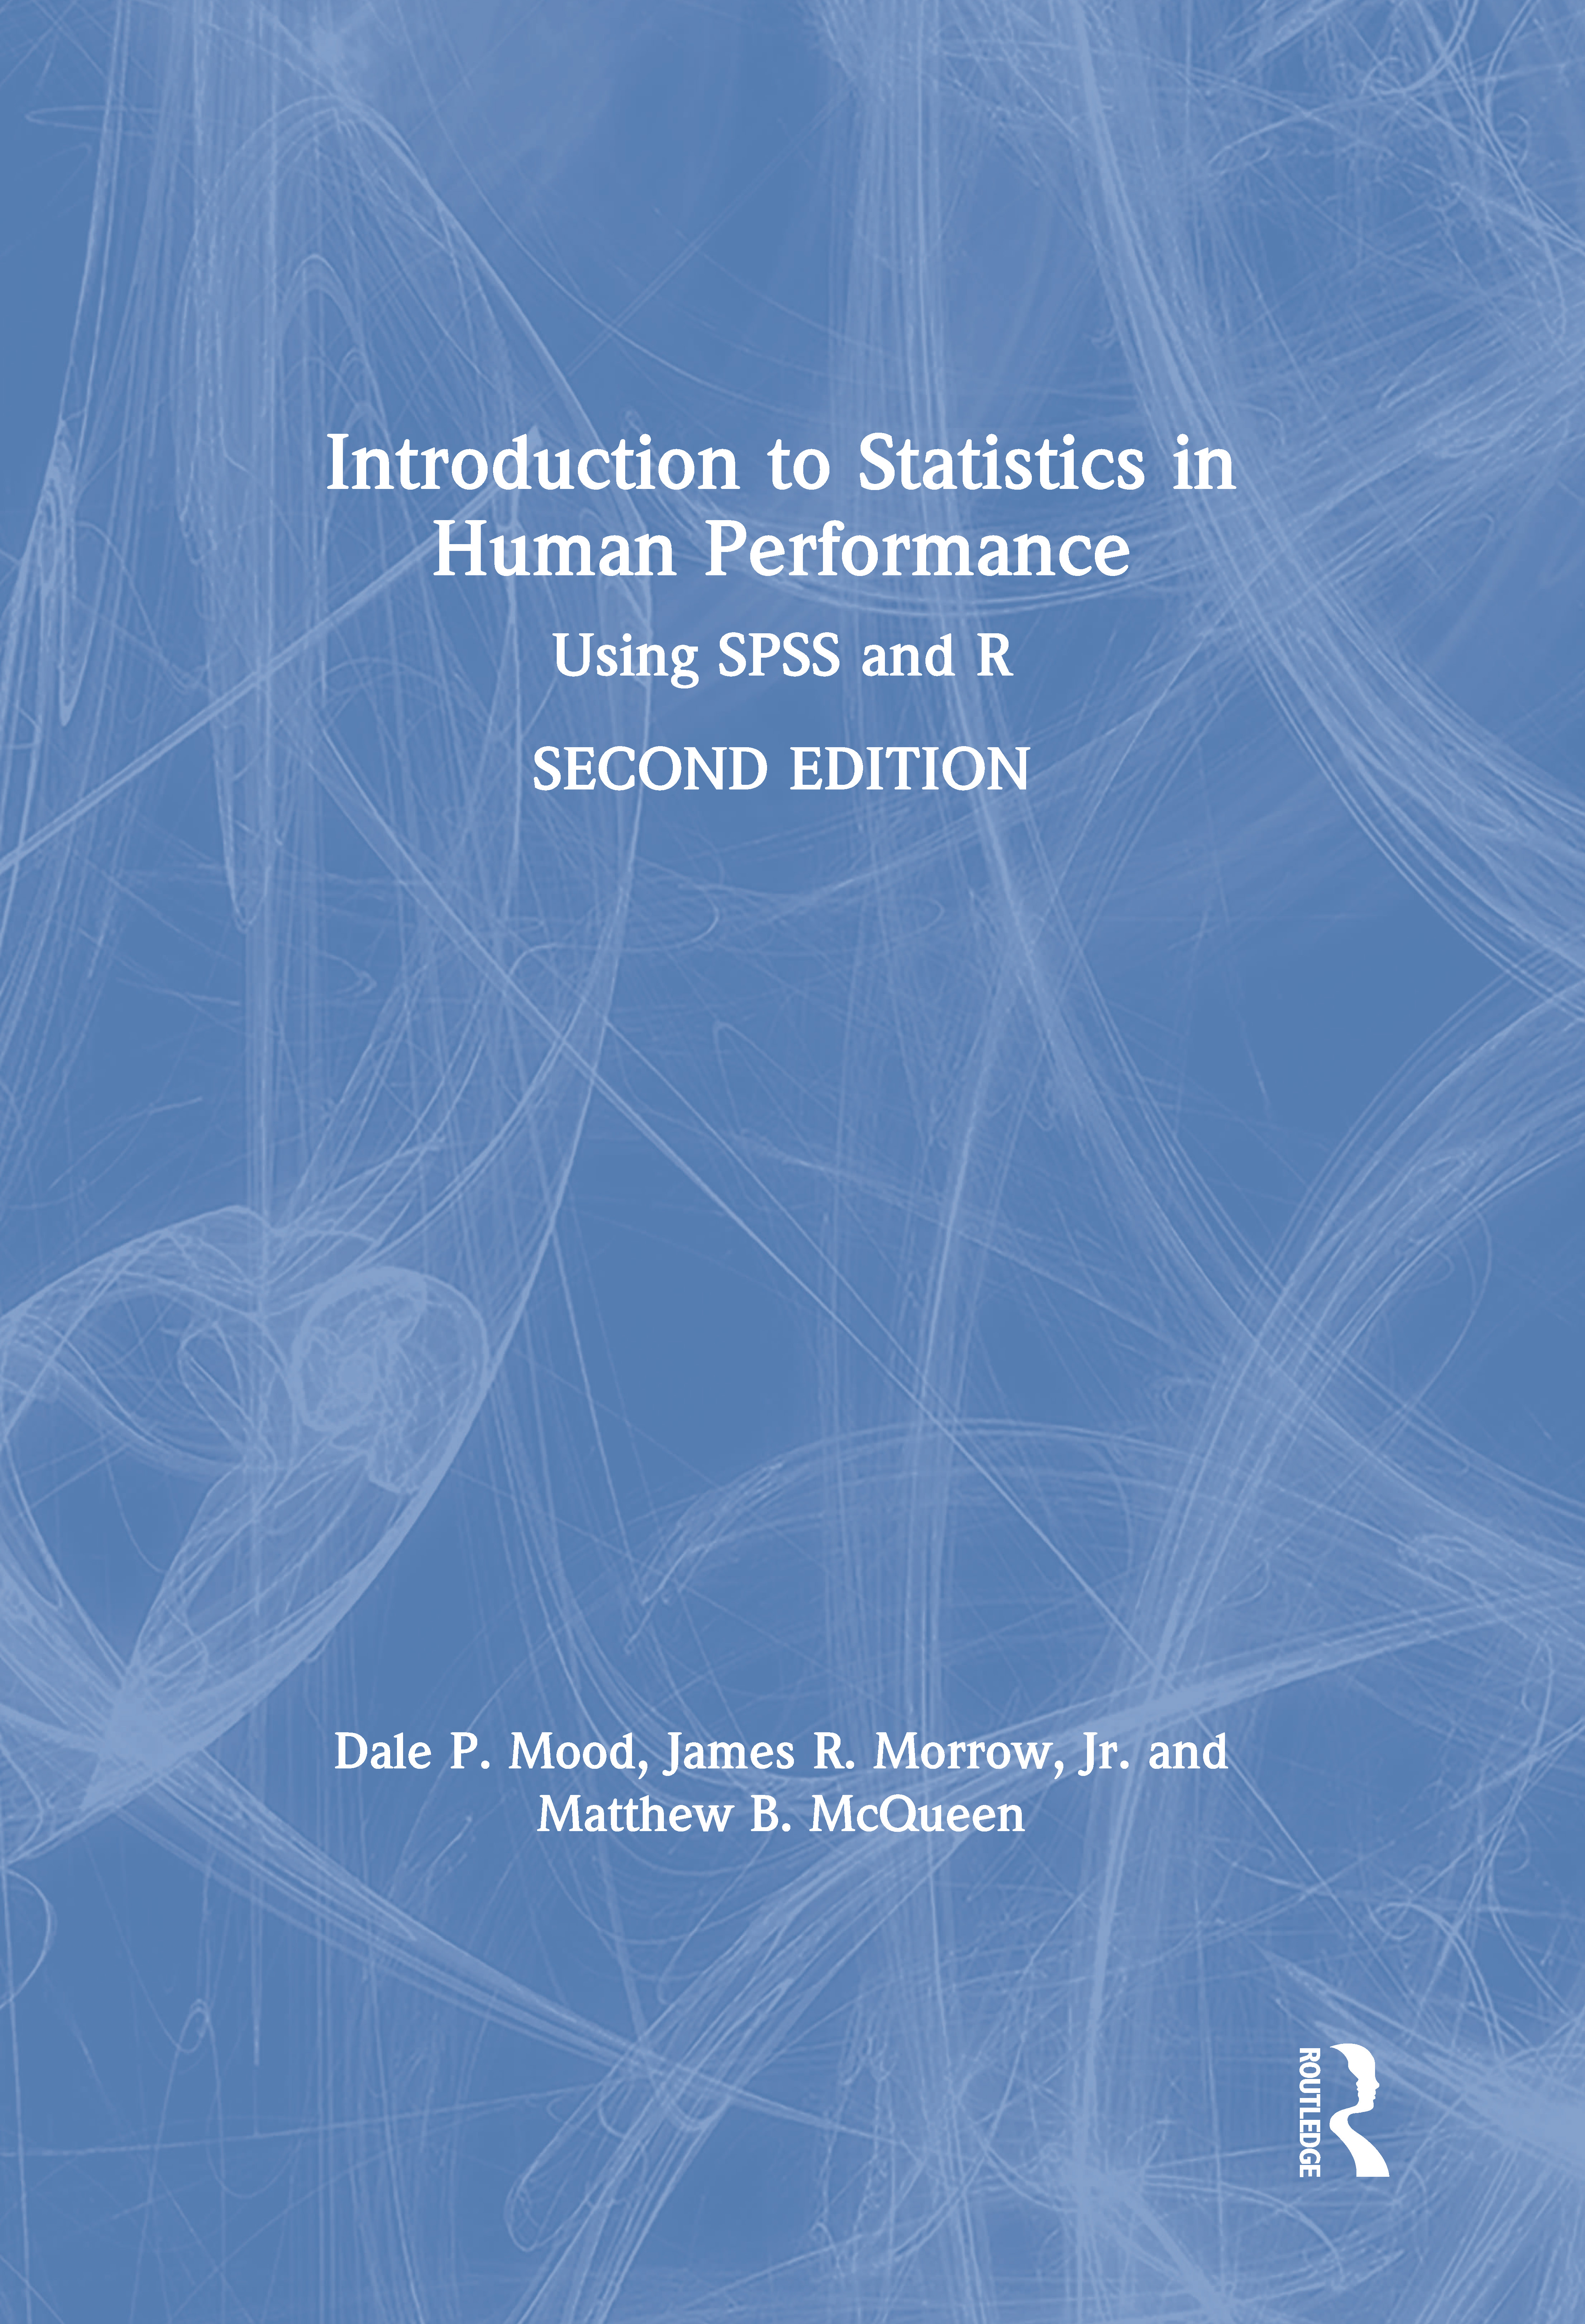 Introduction to Statistics in Human Performance: Using SPSS and R book cover